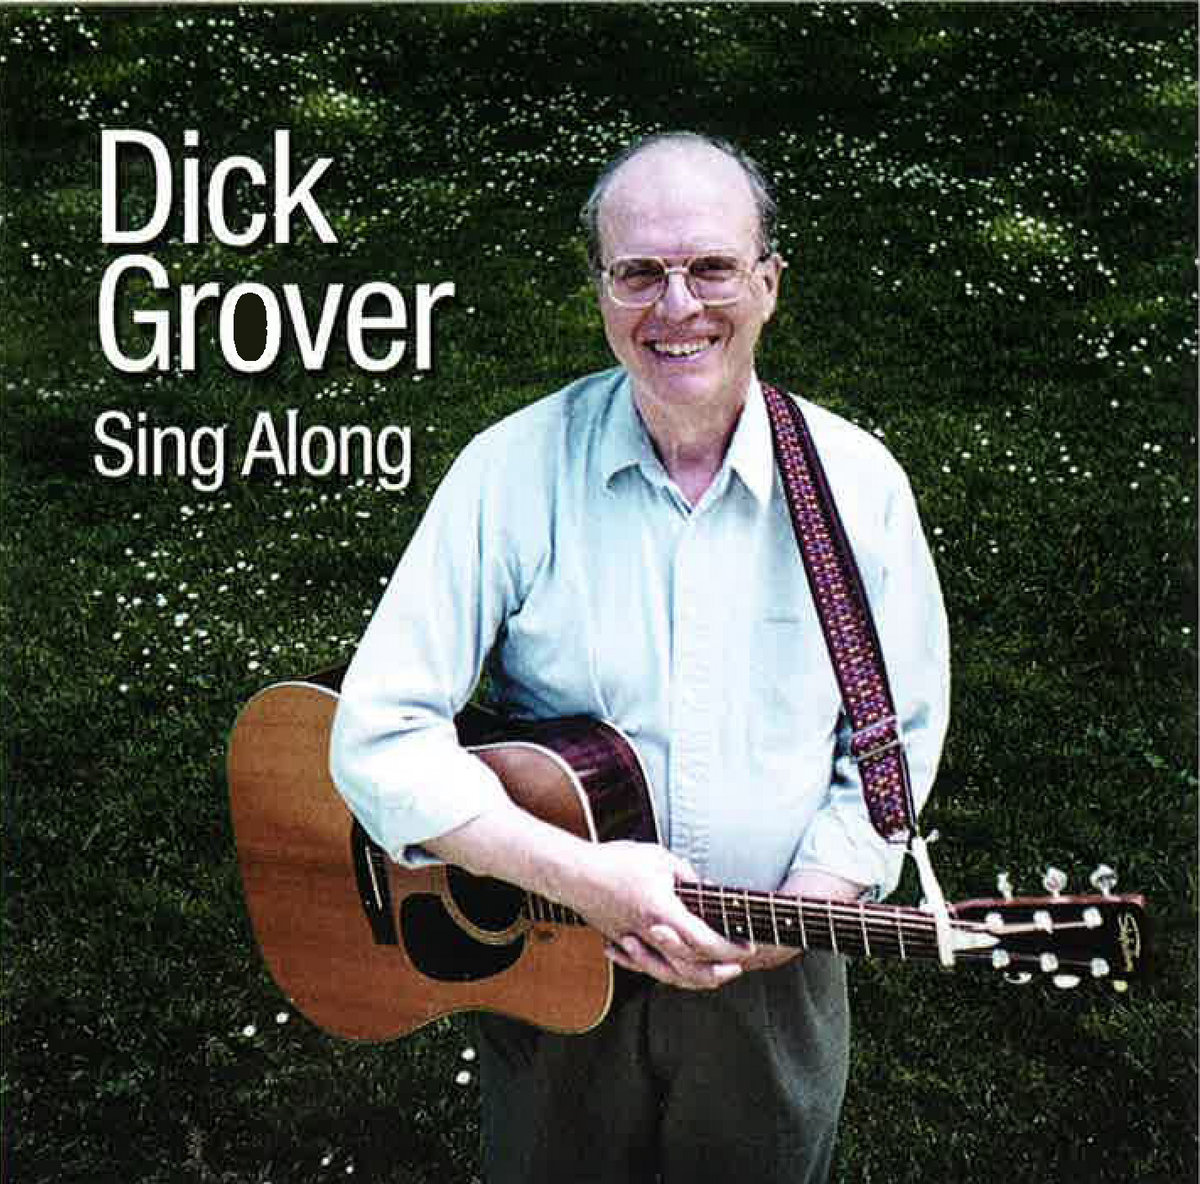 Sing Along Dick Grover